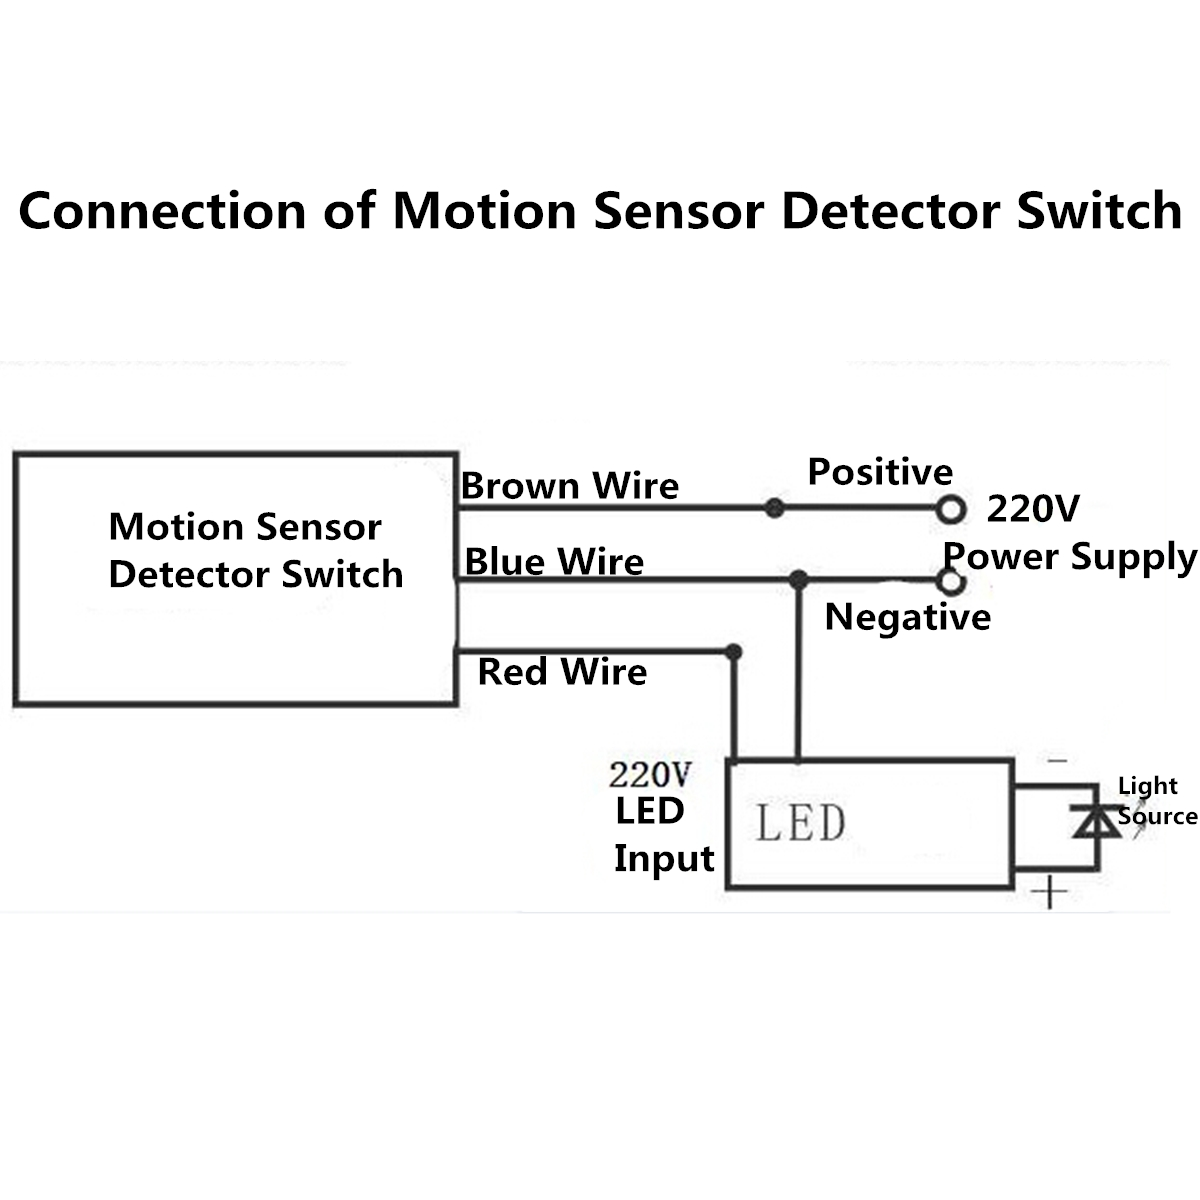 small resolution of light switch wiring diagram 220v wiring librarymotion sensor light switch wiring diagram small pir circuit typical